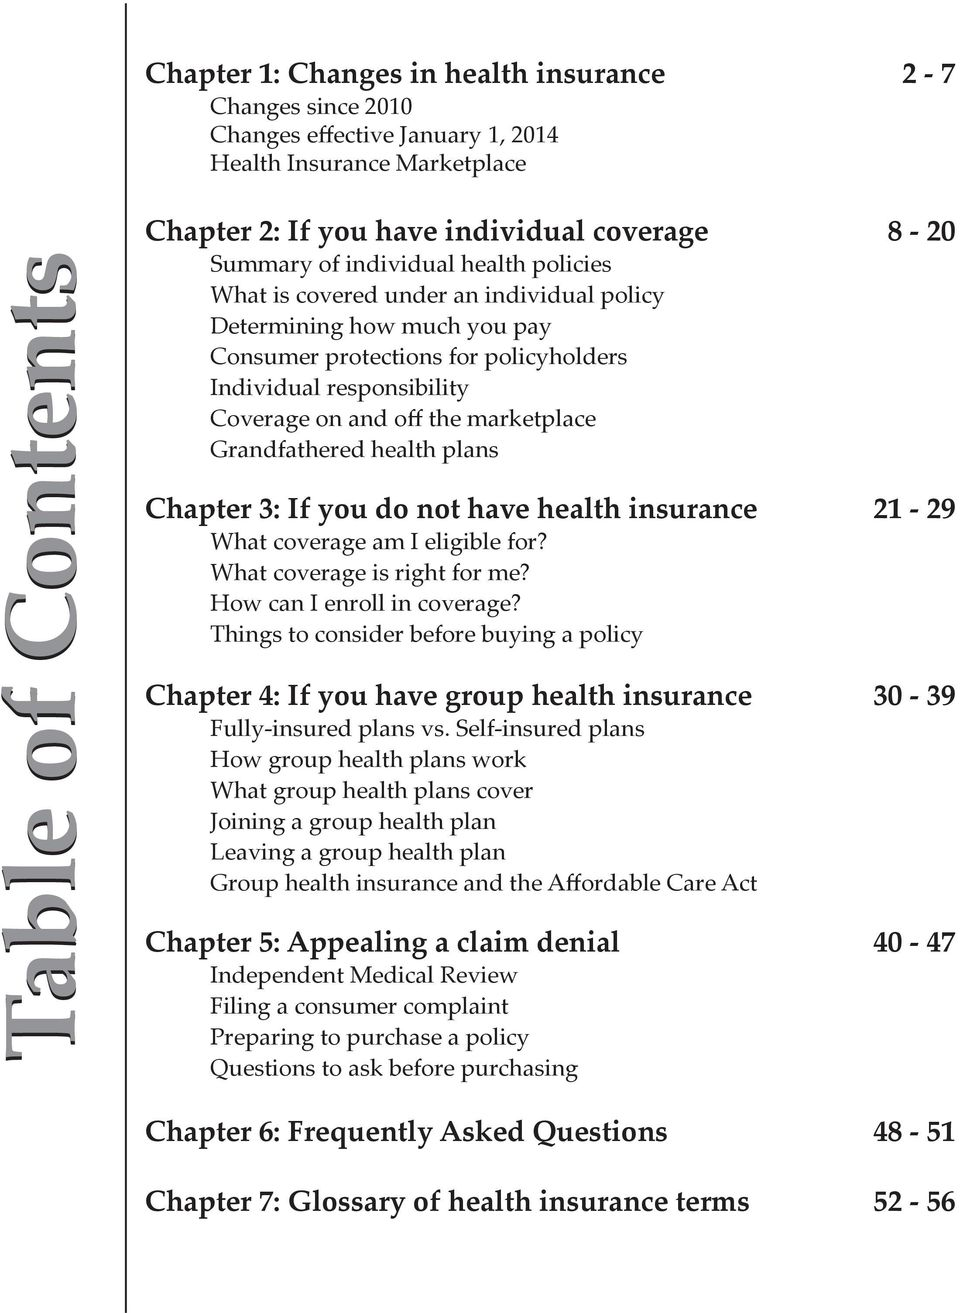 marketplace Grandfathered health plans Chapter 3: If you do not have health insurance 21-29 What coverage am I eligible for? What coverage is right for me? How can I enroll in coverage?